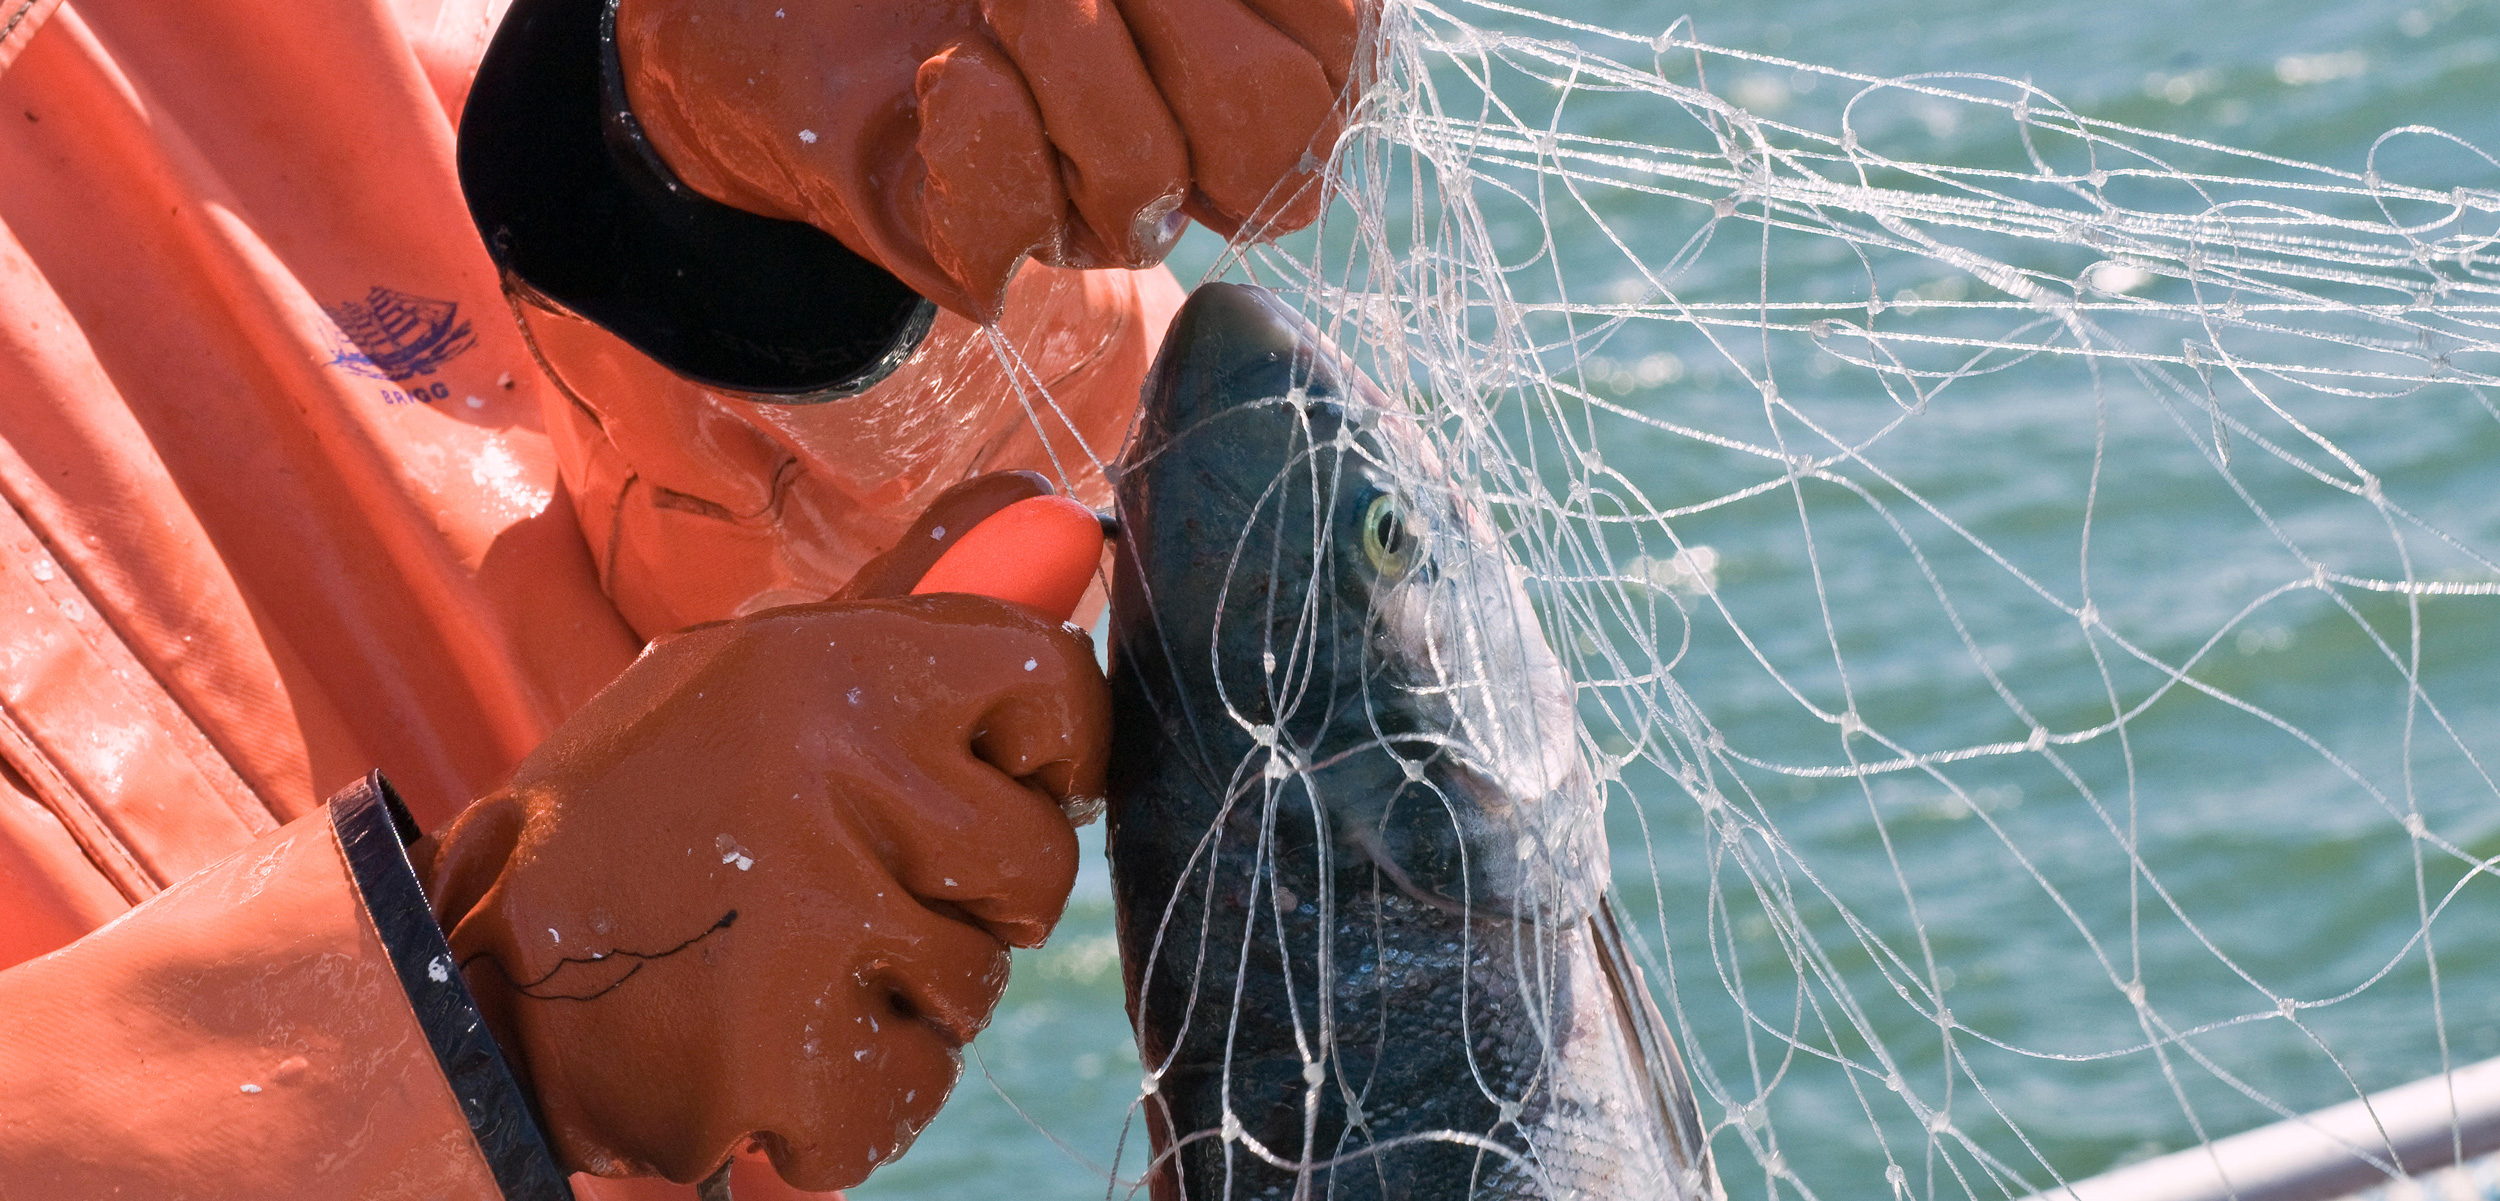 A fisher using a fish pick to remove a sockeye from a gillnet